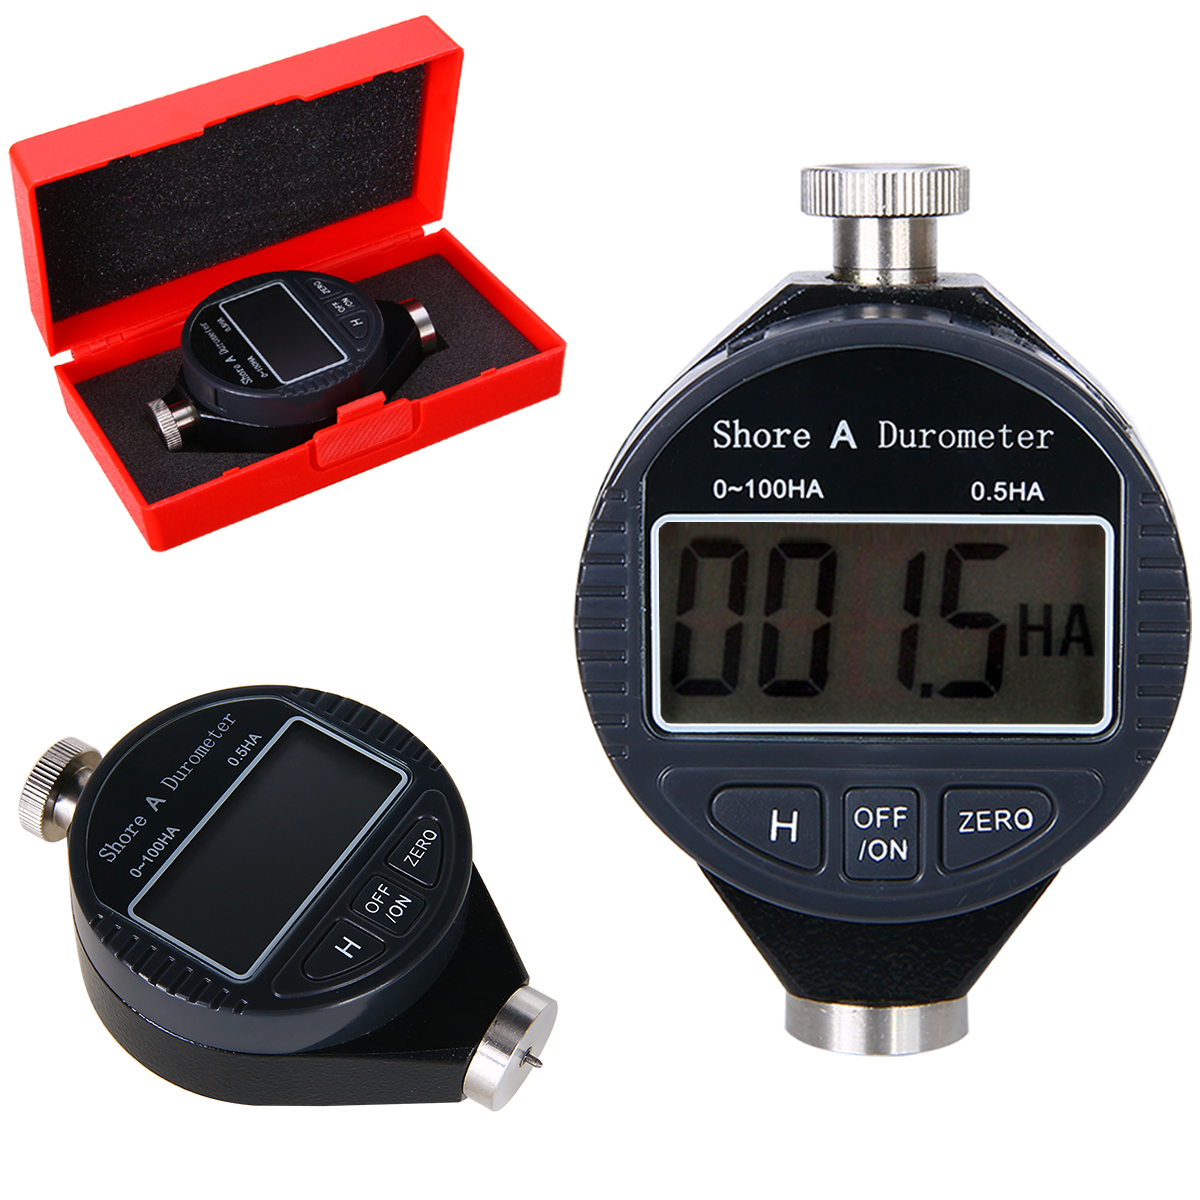 New Digital Shore A Hardness Durometer Tester Professional 0-100HA Durometer Tire Rubber LCD Meter